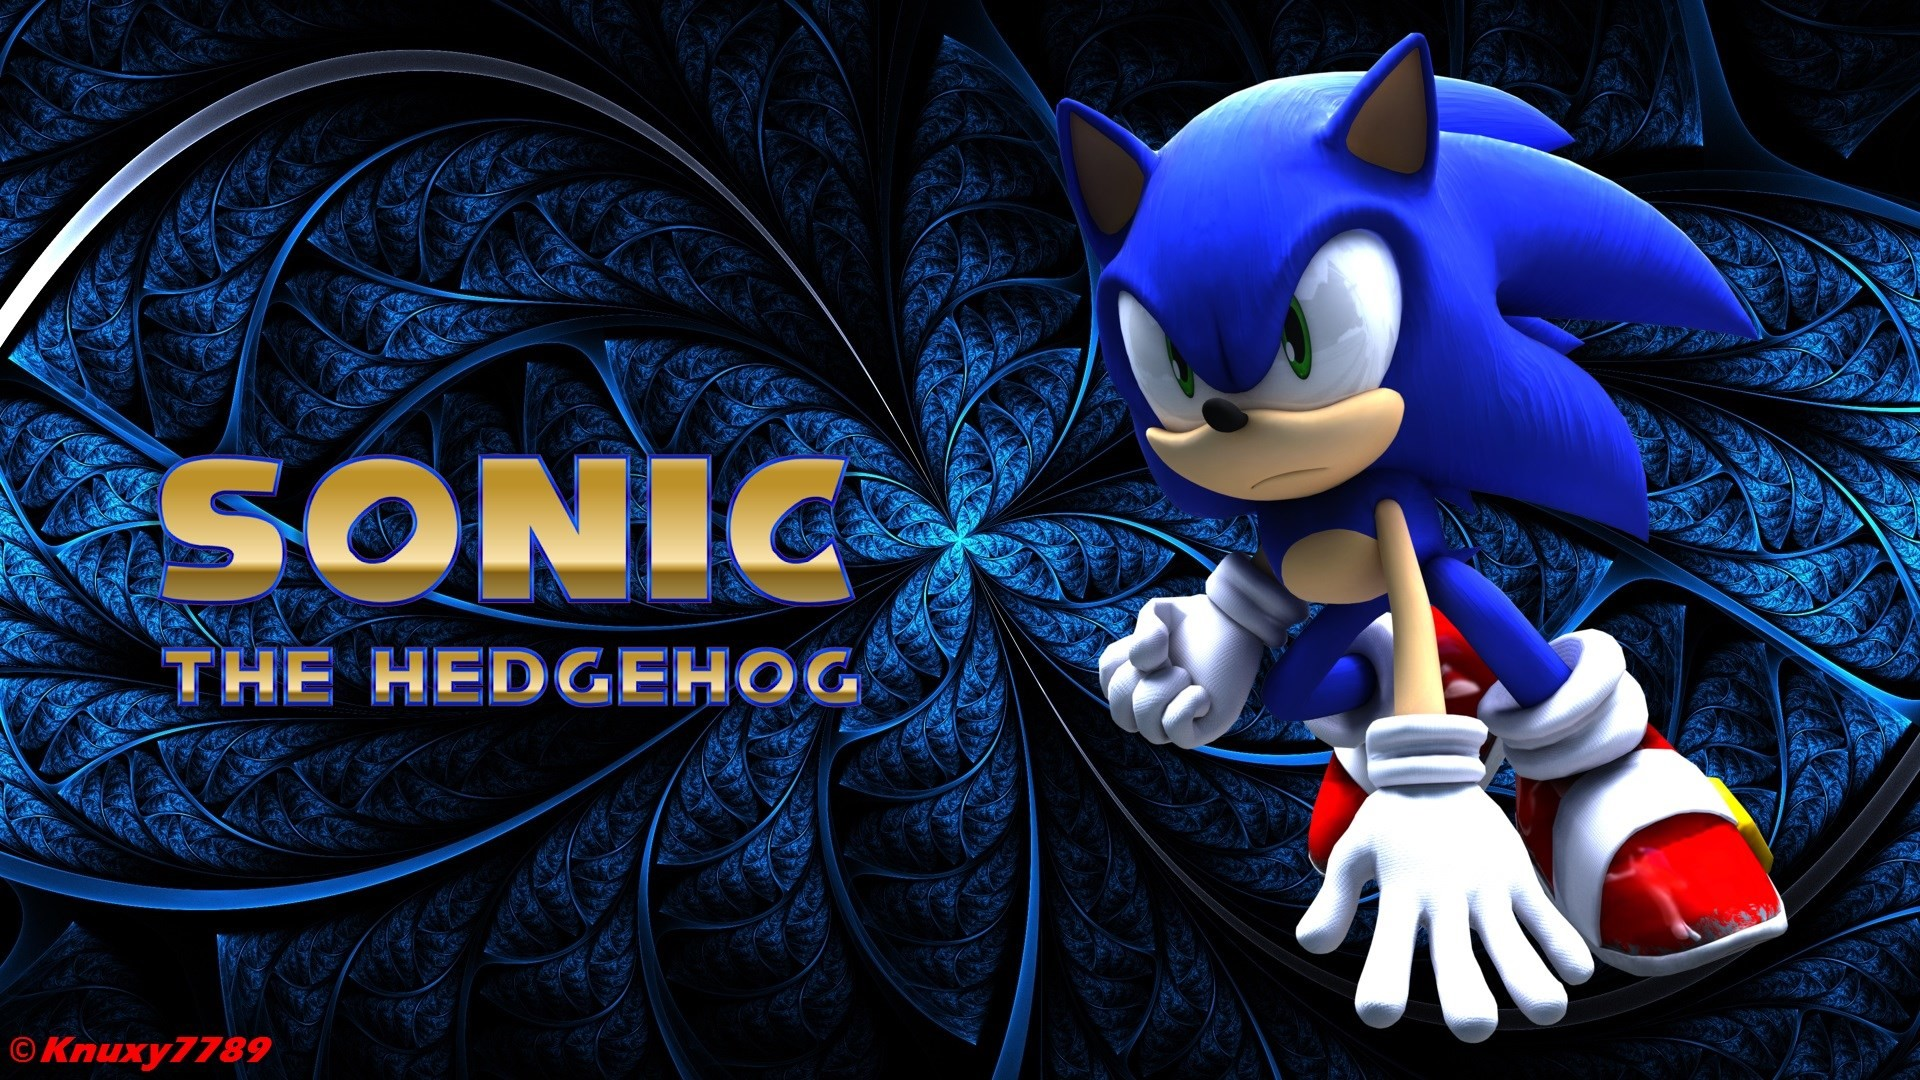 1920x1080 Sonic The Hedgehog Wallpapers HDQ Sonic The Hedgehog Images